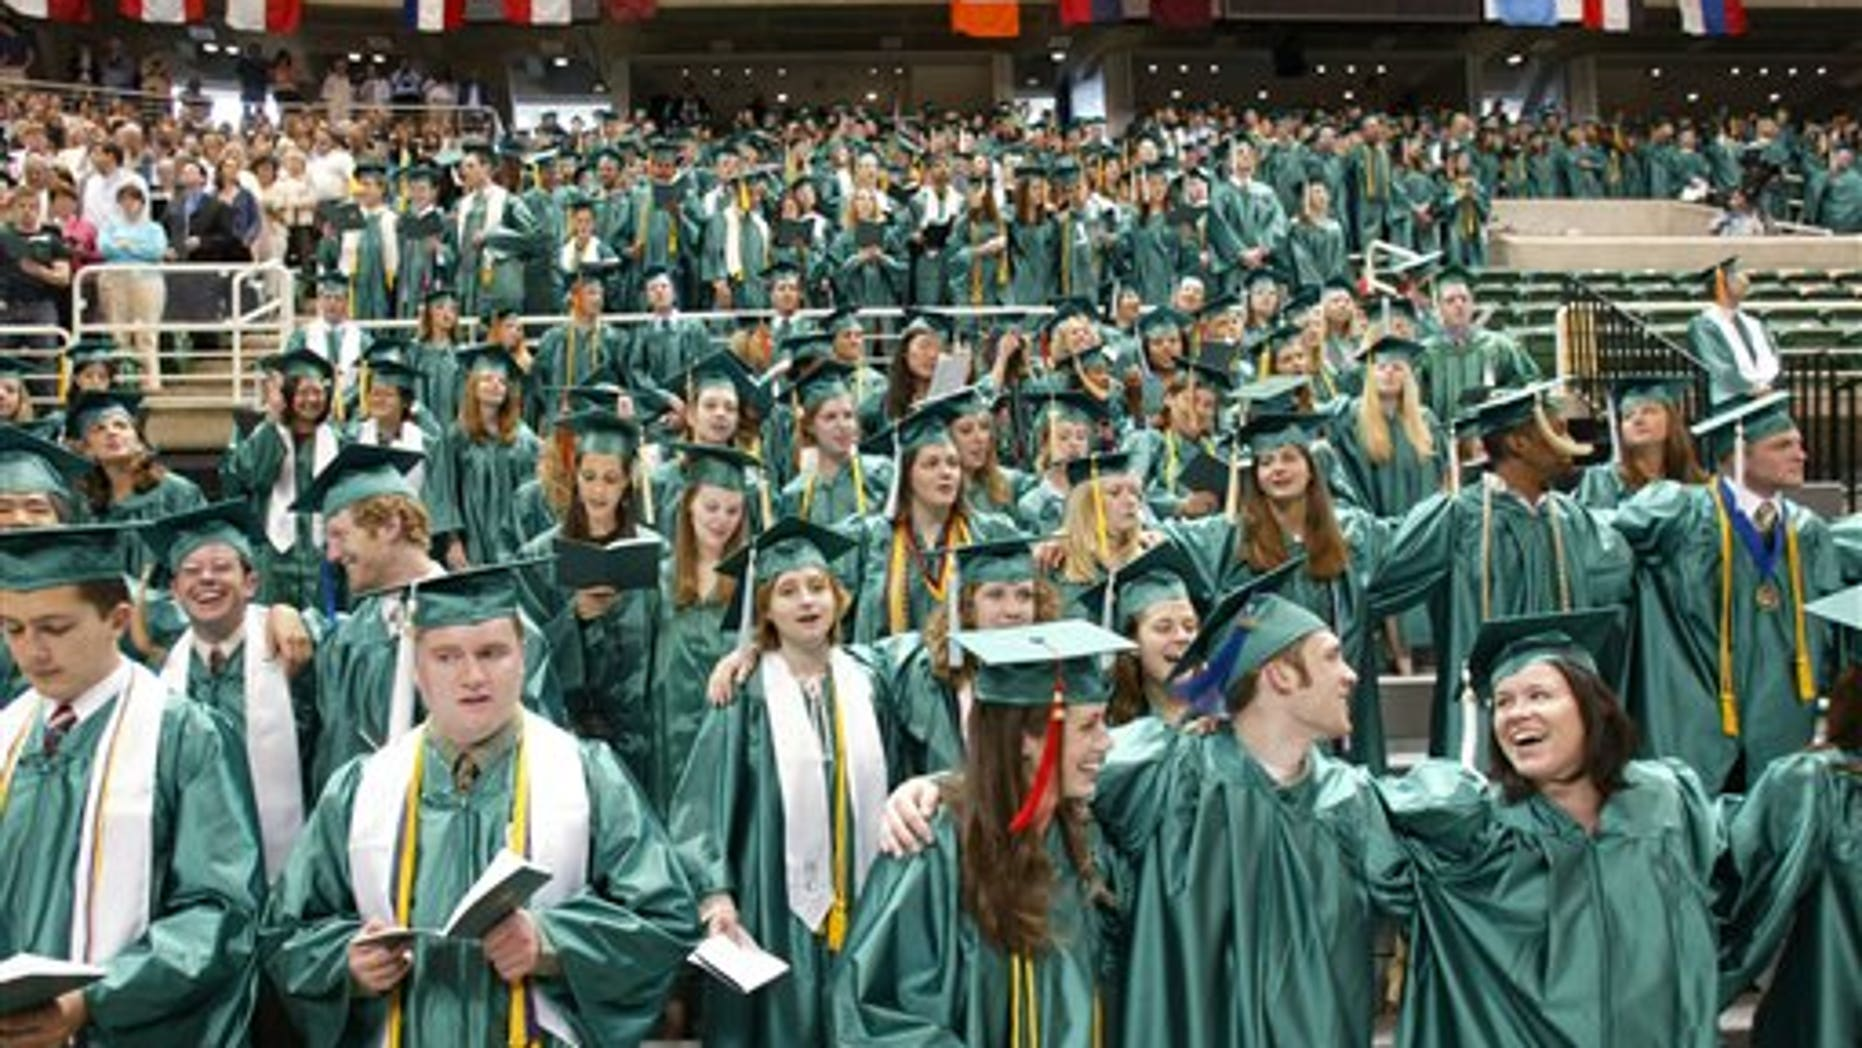 Michigan State University graduates as they sing their school's Alma Mater at the close of convocation ceremonies in East Lansing, Mich.